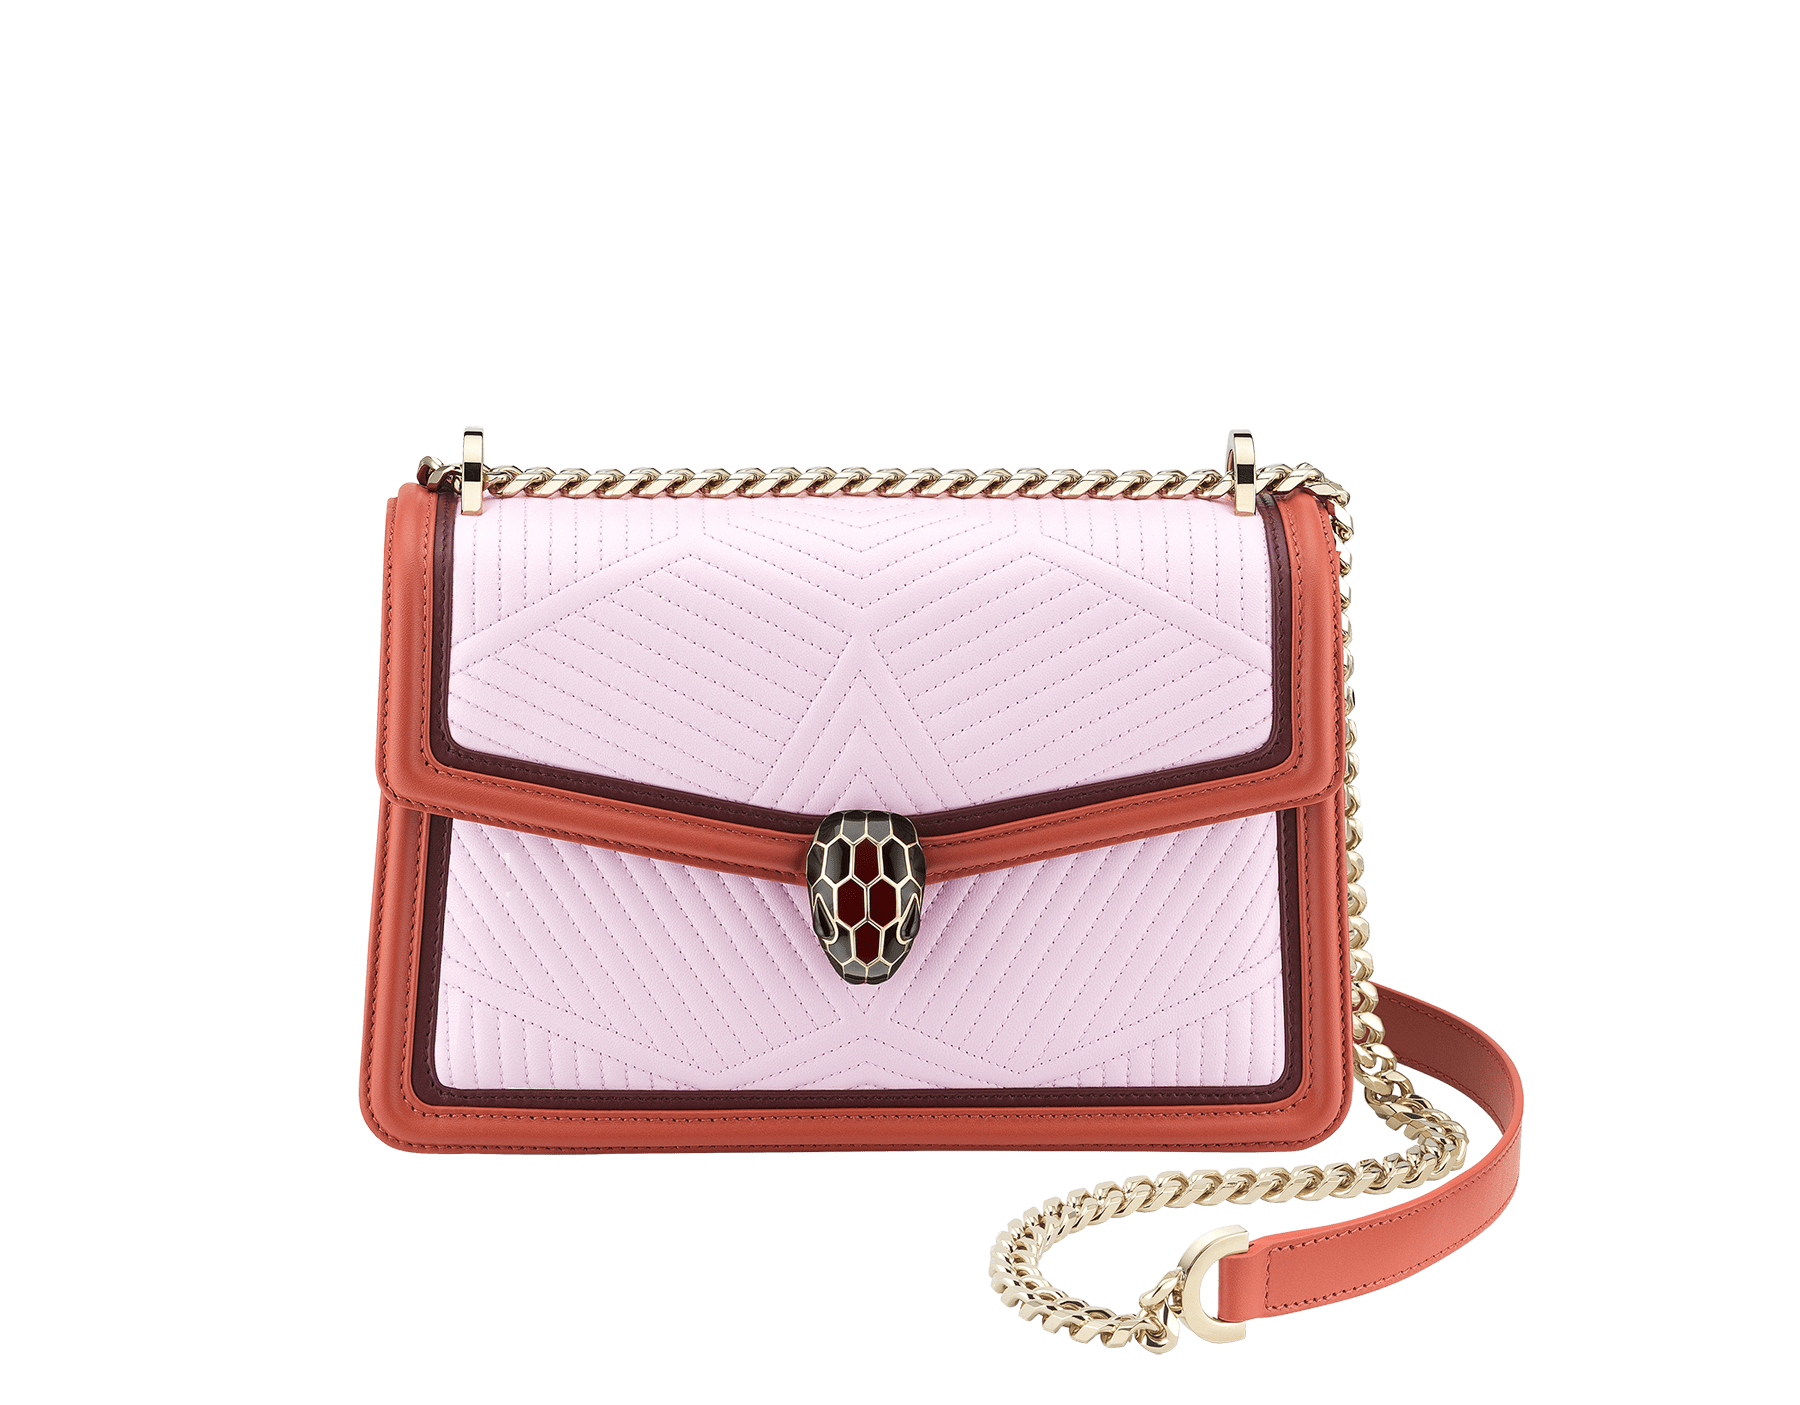 Serpenti Diamond Blast shoulder bag with rosa di francia quilted nappa leather body and imperial topaz and Roman garnet calf leather frames. Iconic snakehead closure in light gold plated brass embellished with Roman garnet and black enamel and black onyx eyes. 288829 image 1